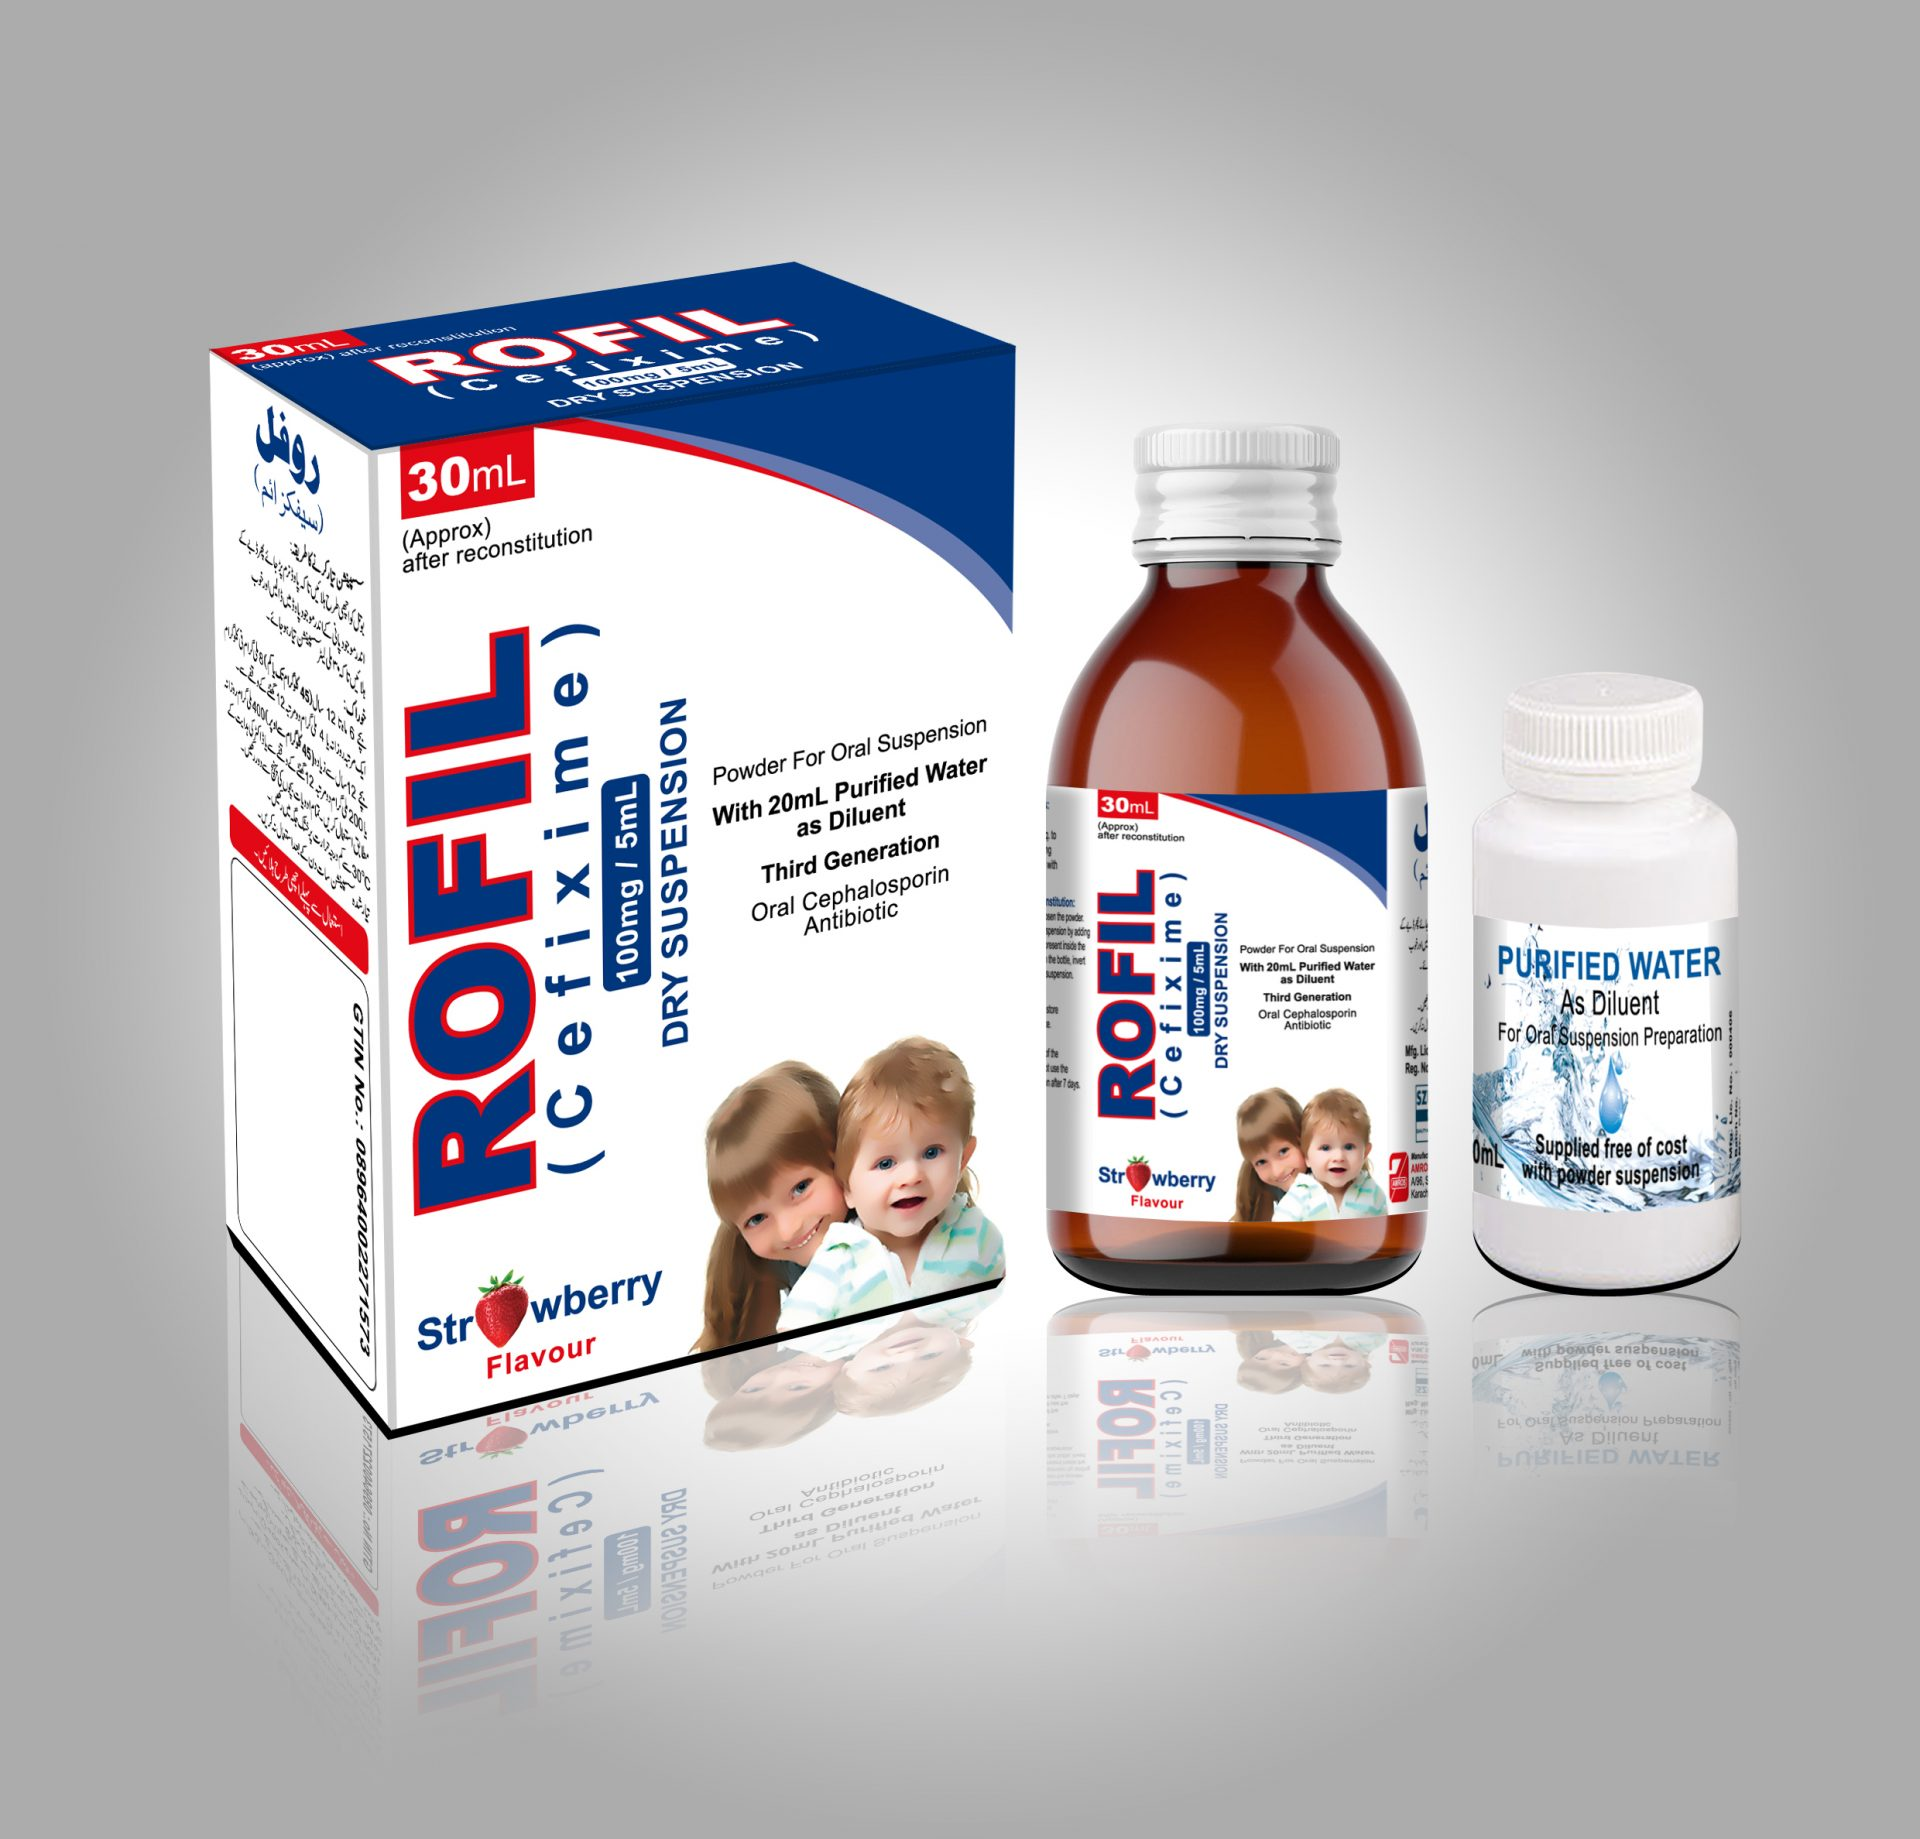 ROFIL (Cefixime) 100mg Dry Powder Suspension 3D